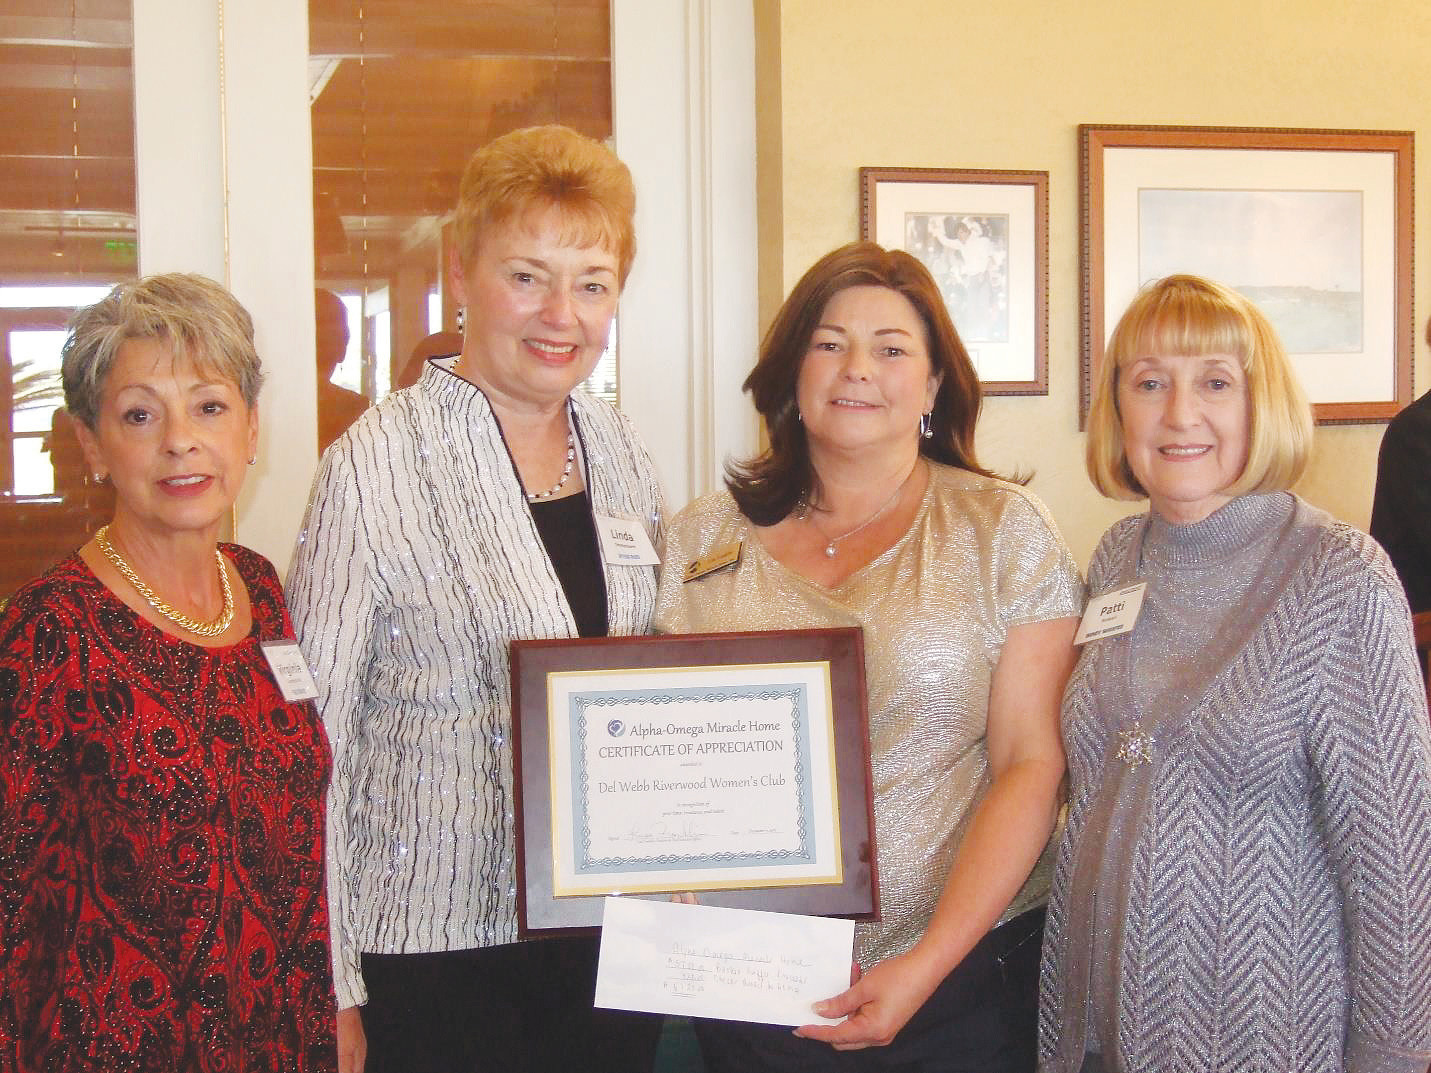 Riverwood Women's Club presents a check to Alpha-Omega Miracle Home and receives a Certificate of Appreciation. Left to right: Virginia Marchesiello and Linda Ommerborn, co-chairs of the Women's Club Outreach Committee; Lisa Franklin, founder and CEO of The Alpha-Omega Miracle Home; and Patti Russell, president of the Riverwood Women's Club.